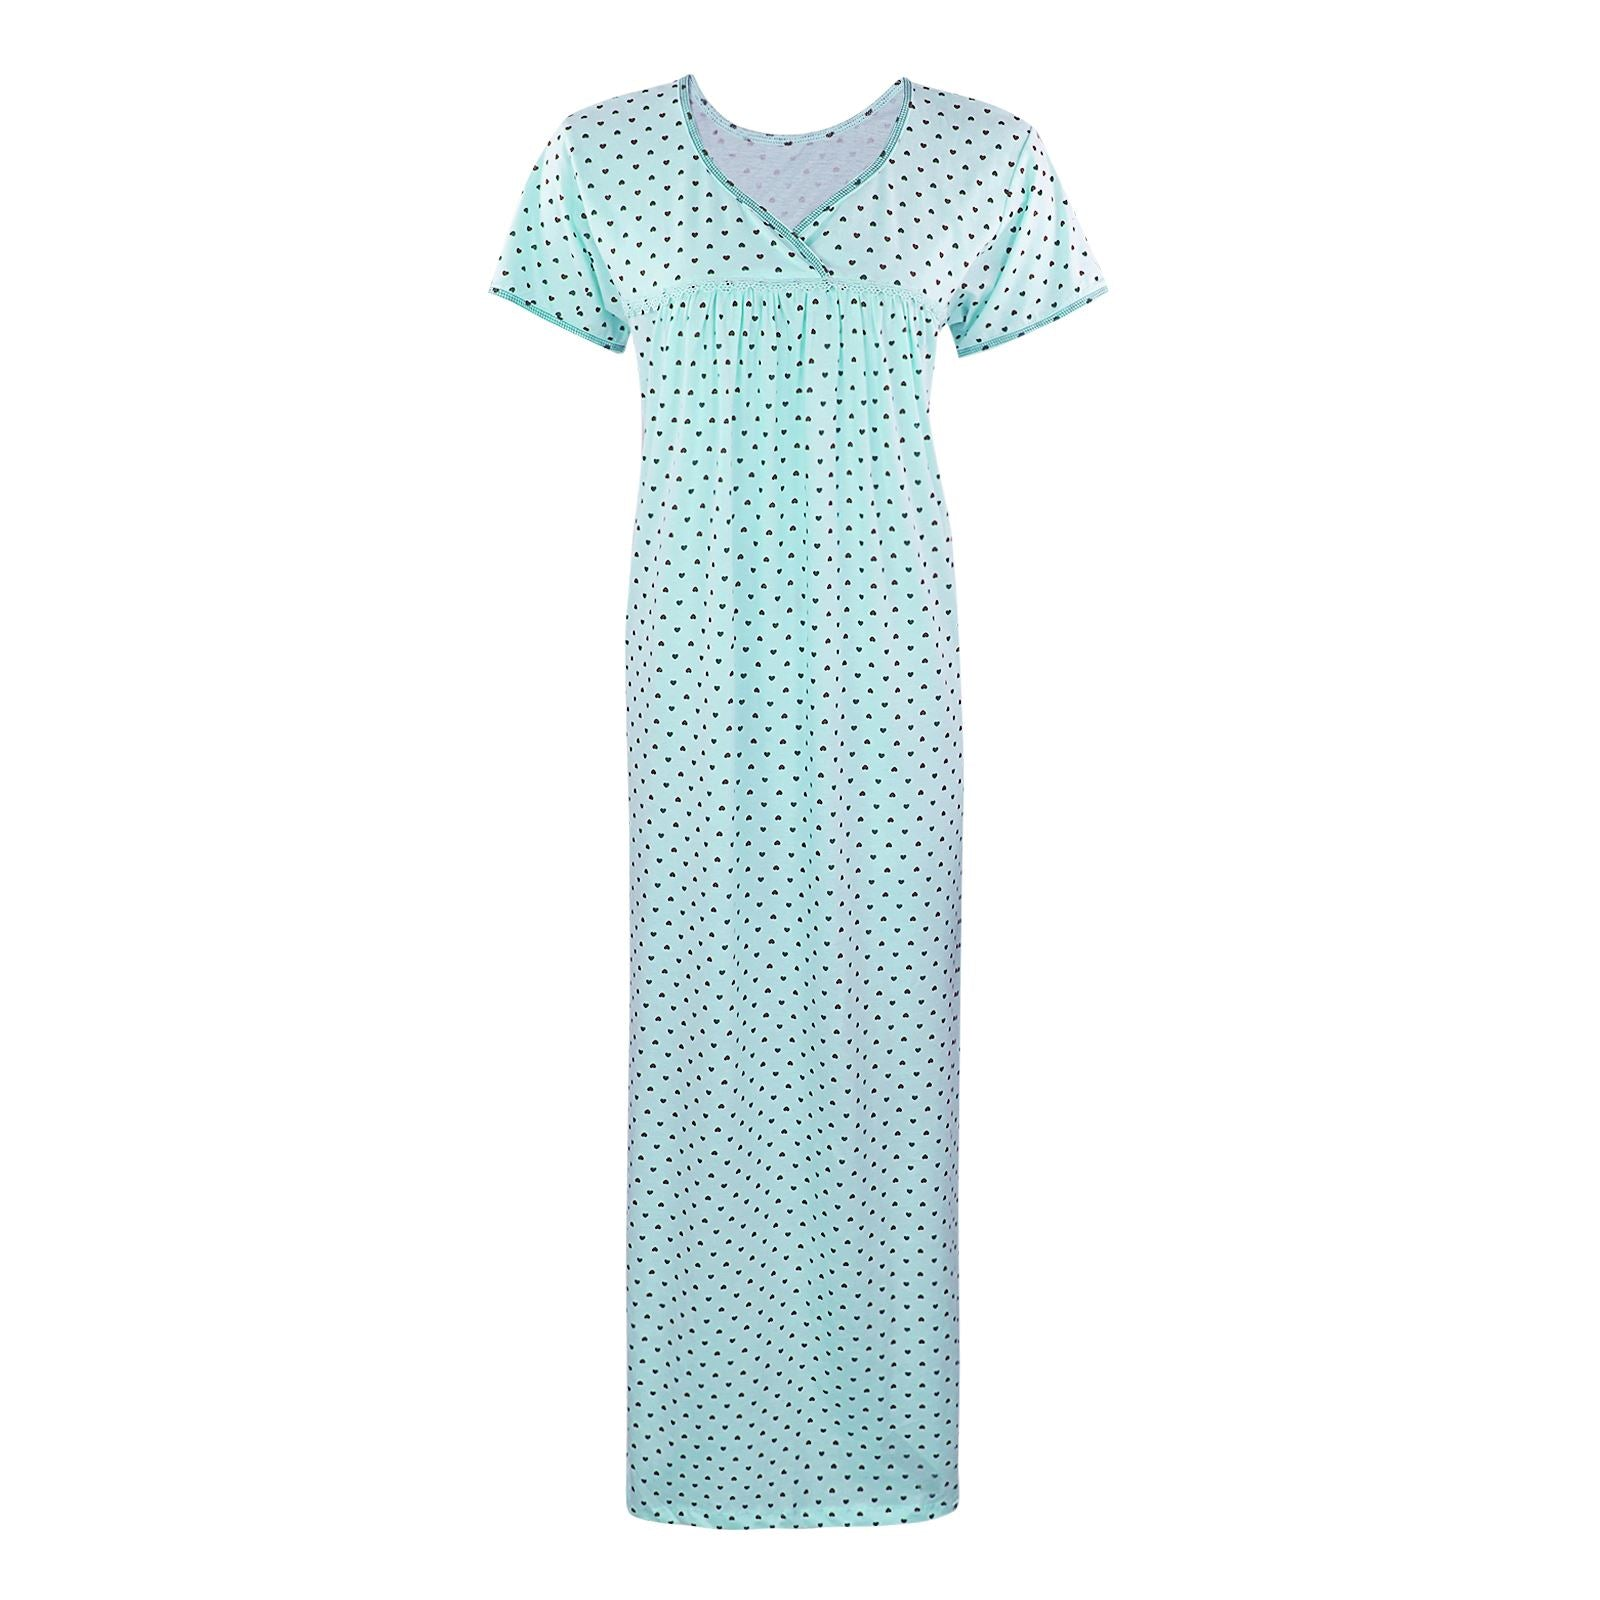 Color: Sky Blue 100% Cotton Heart Print Long Nightie Size: One Size